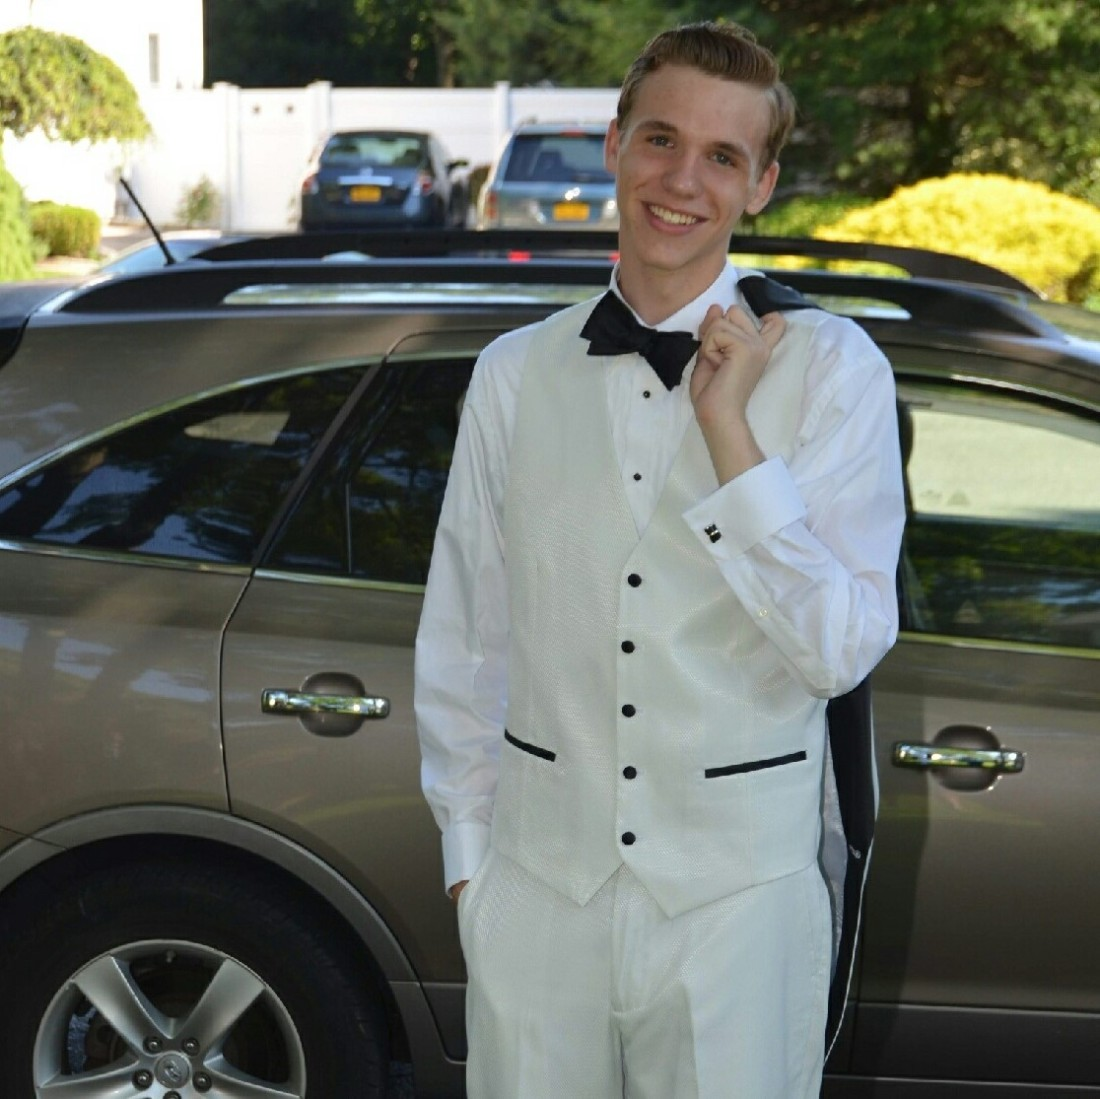 062018 Nathaniel going to his prom.jpg